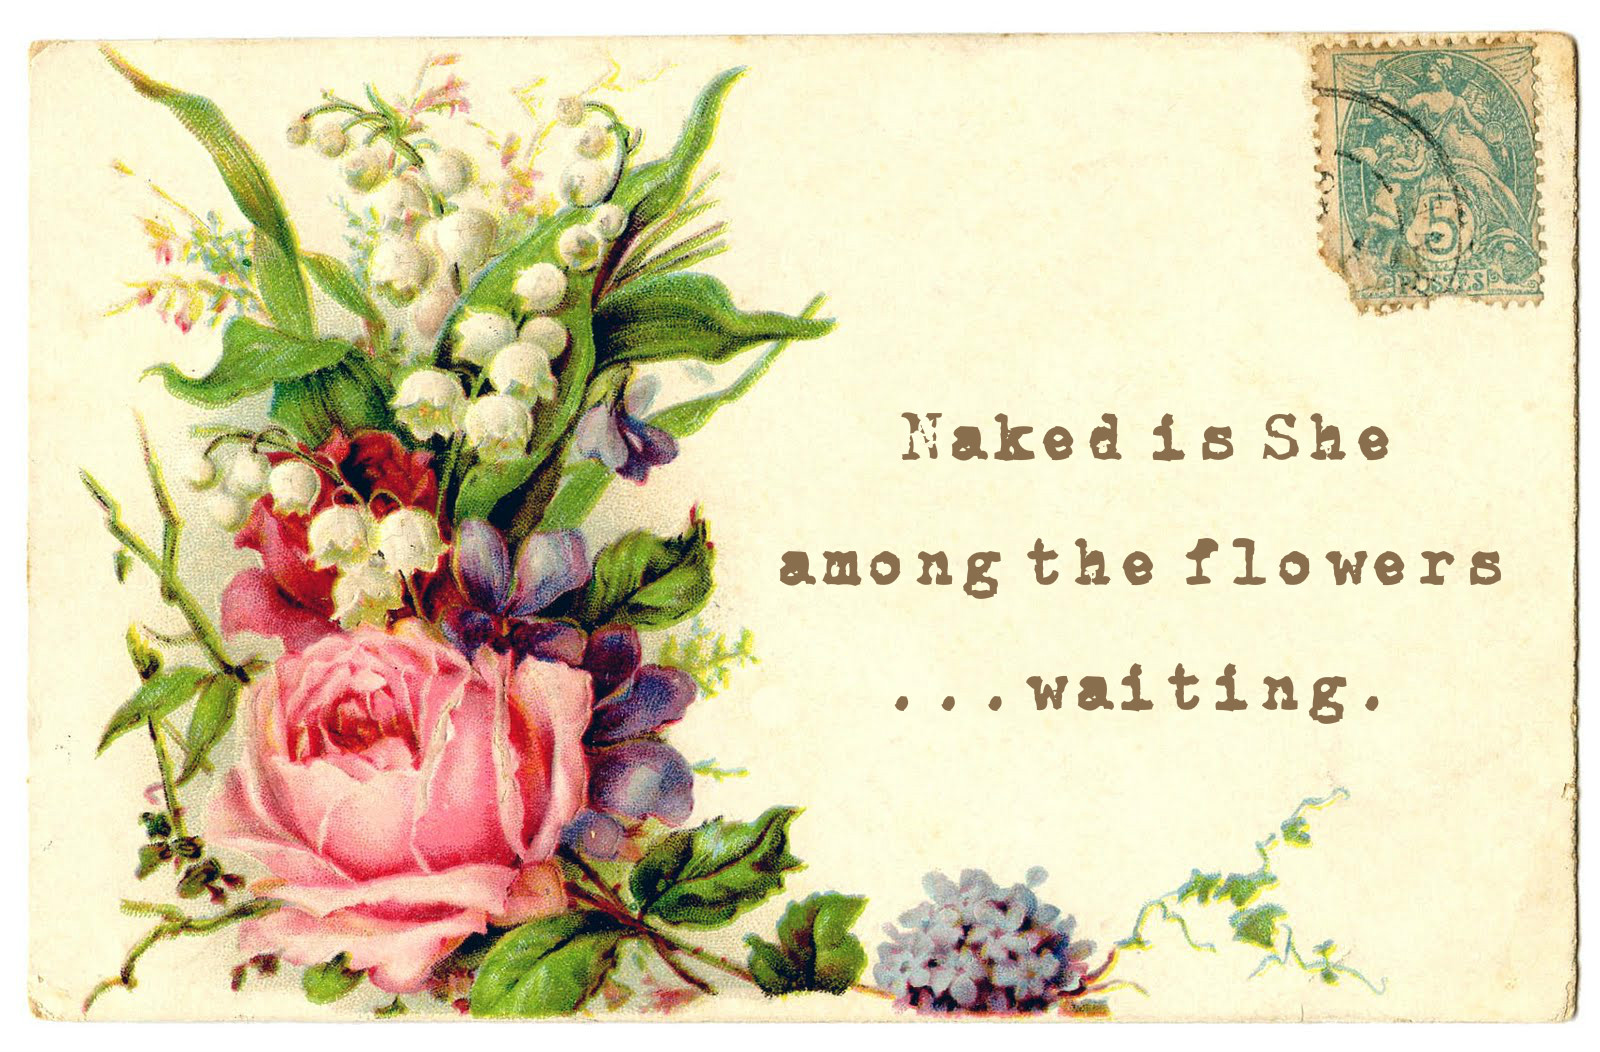 Naked is She postcard